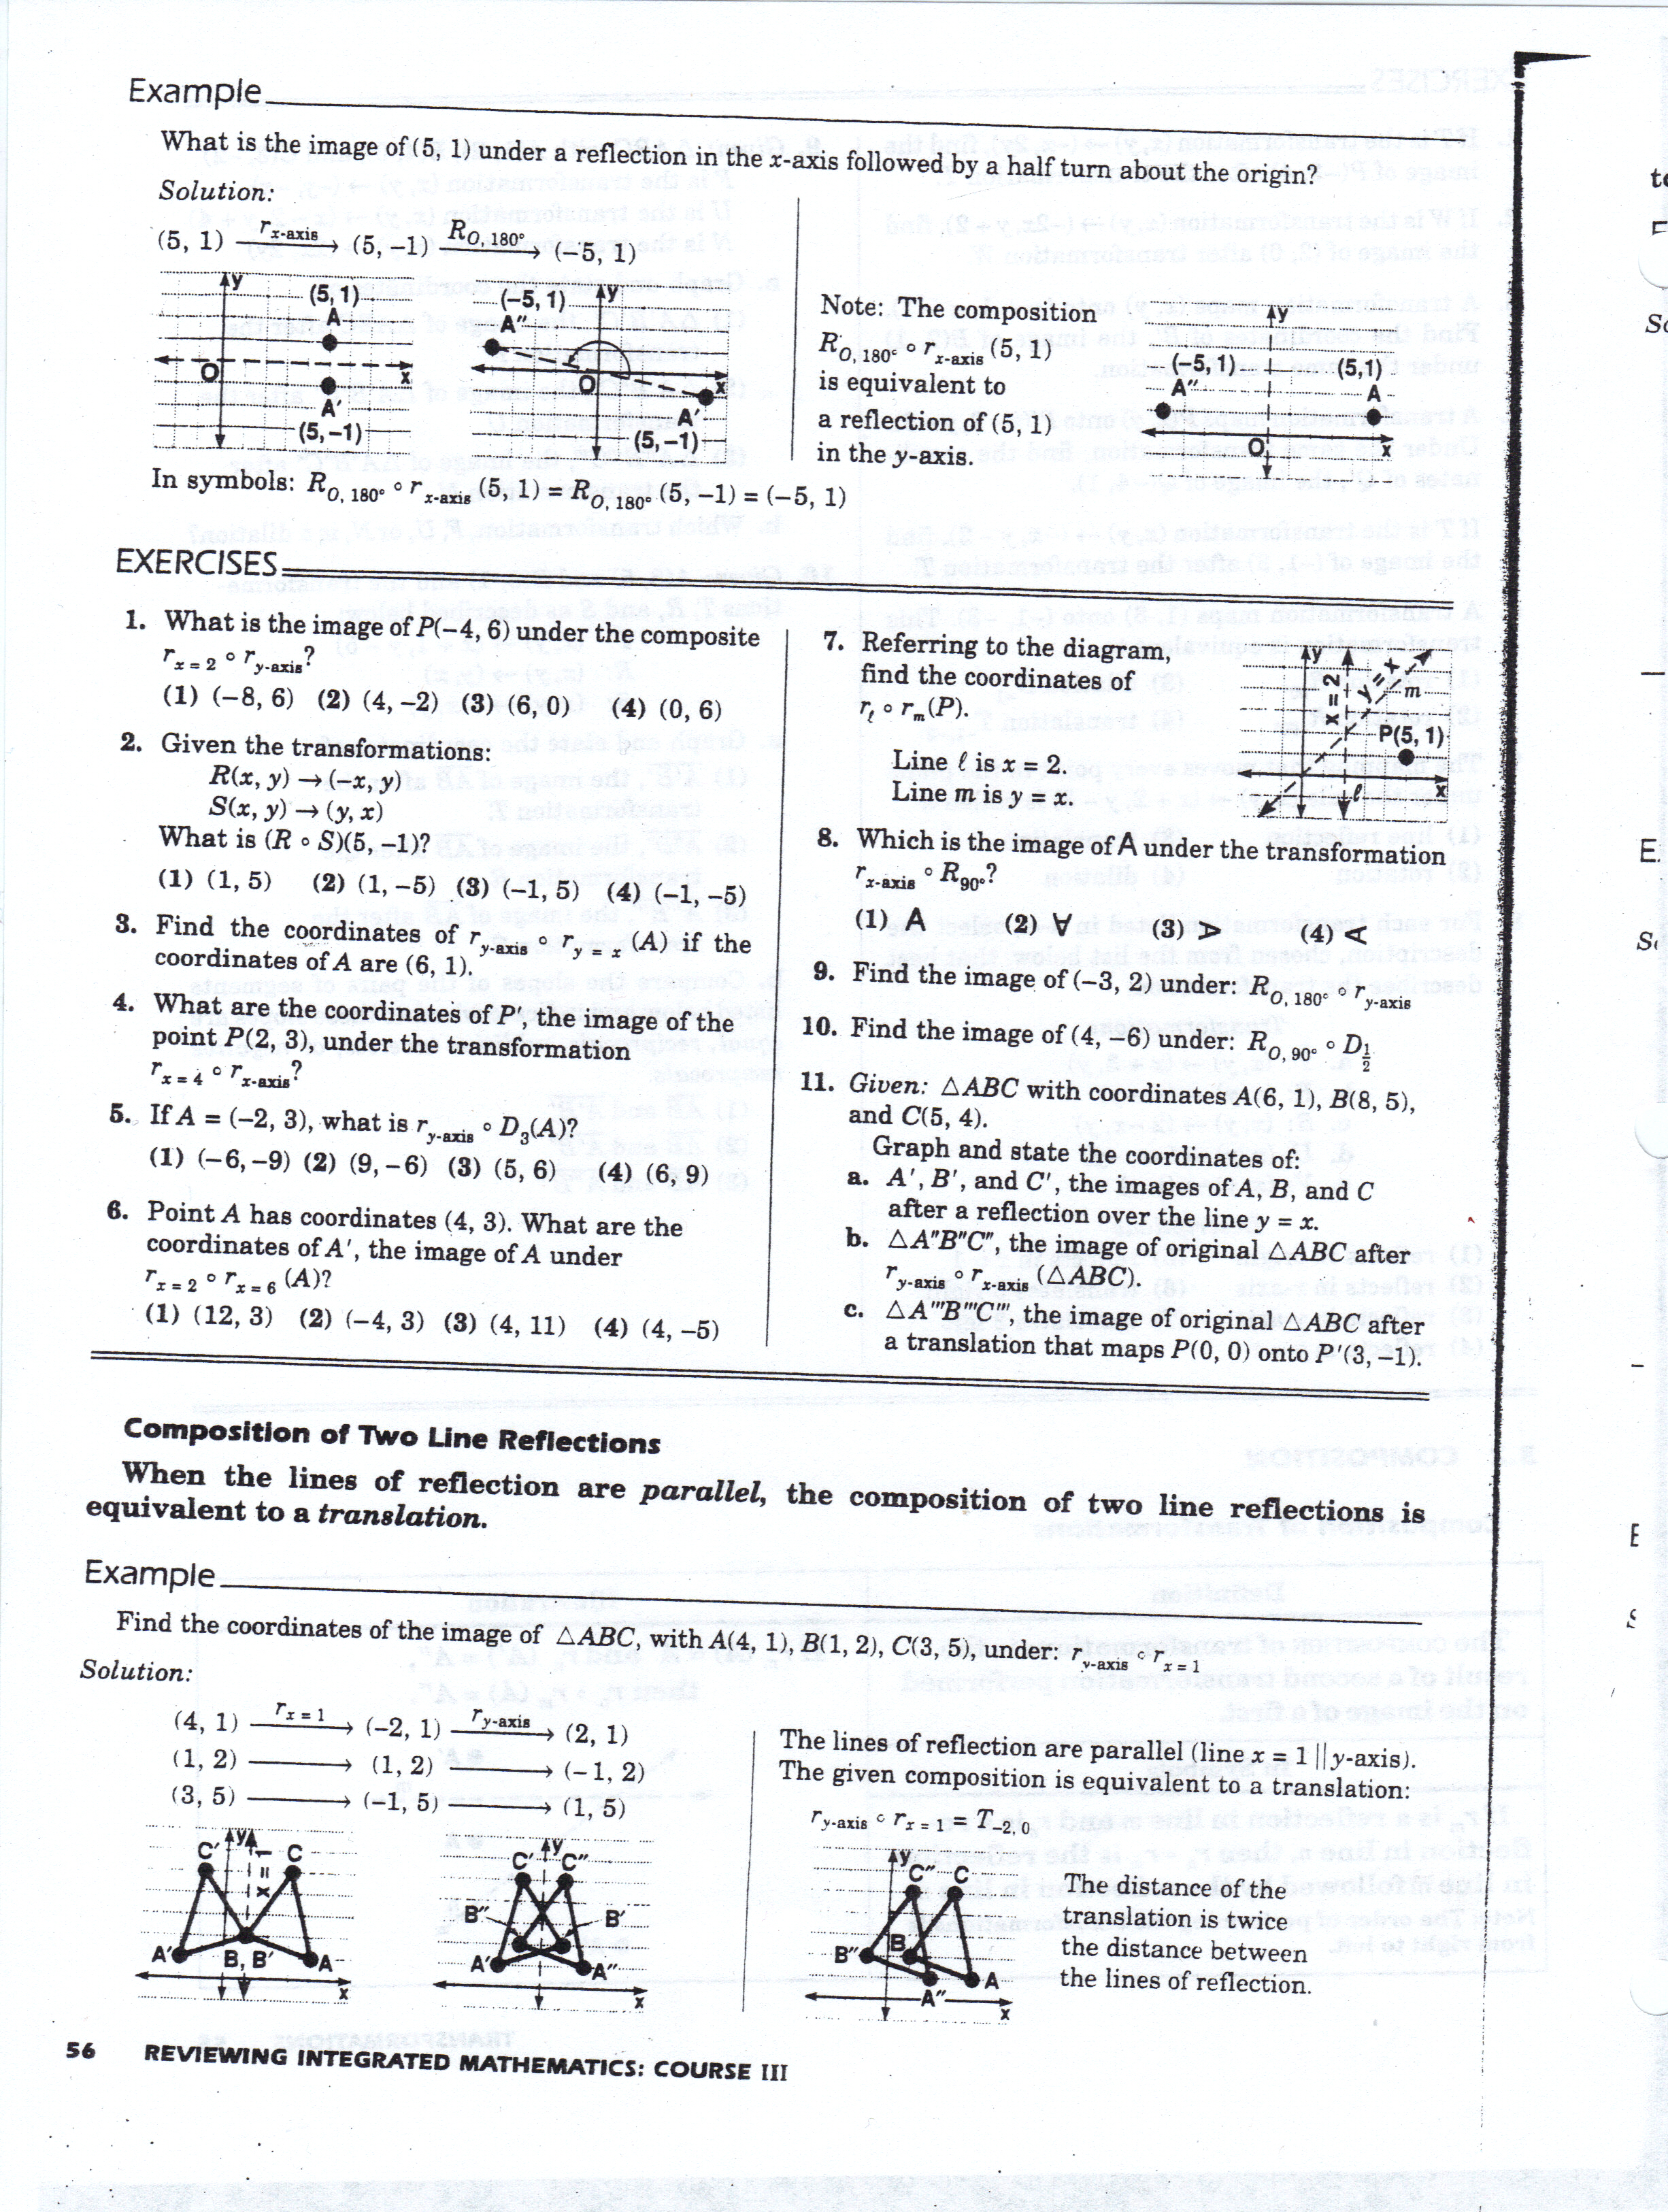 Printables Properties Of Parallelograms Worksheet geometry worksheets mhshs wiki symmetry worksheet composite transformations p55 p56 properties of parallelograms